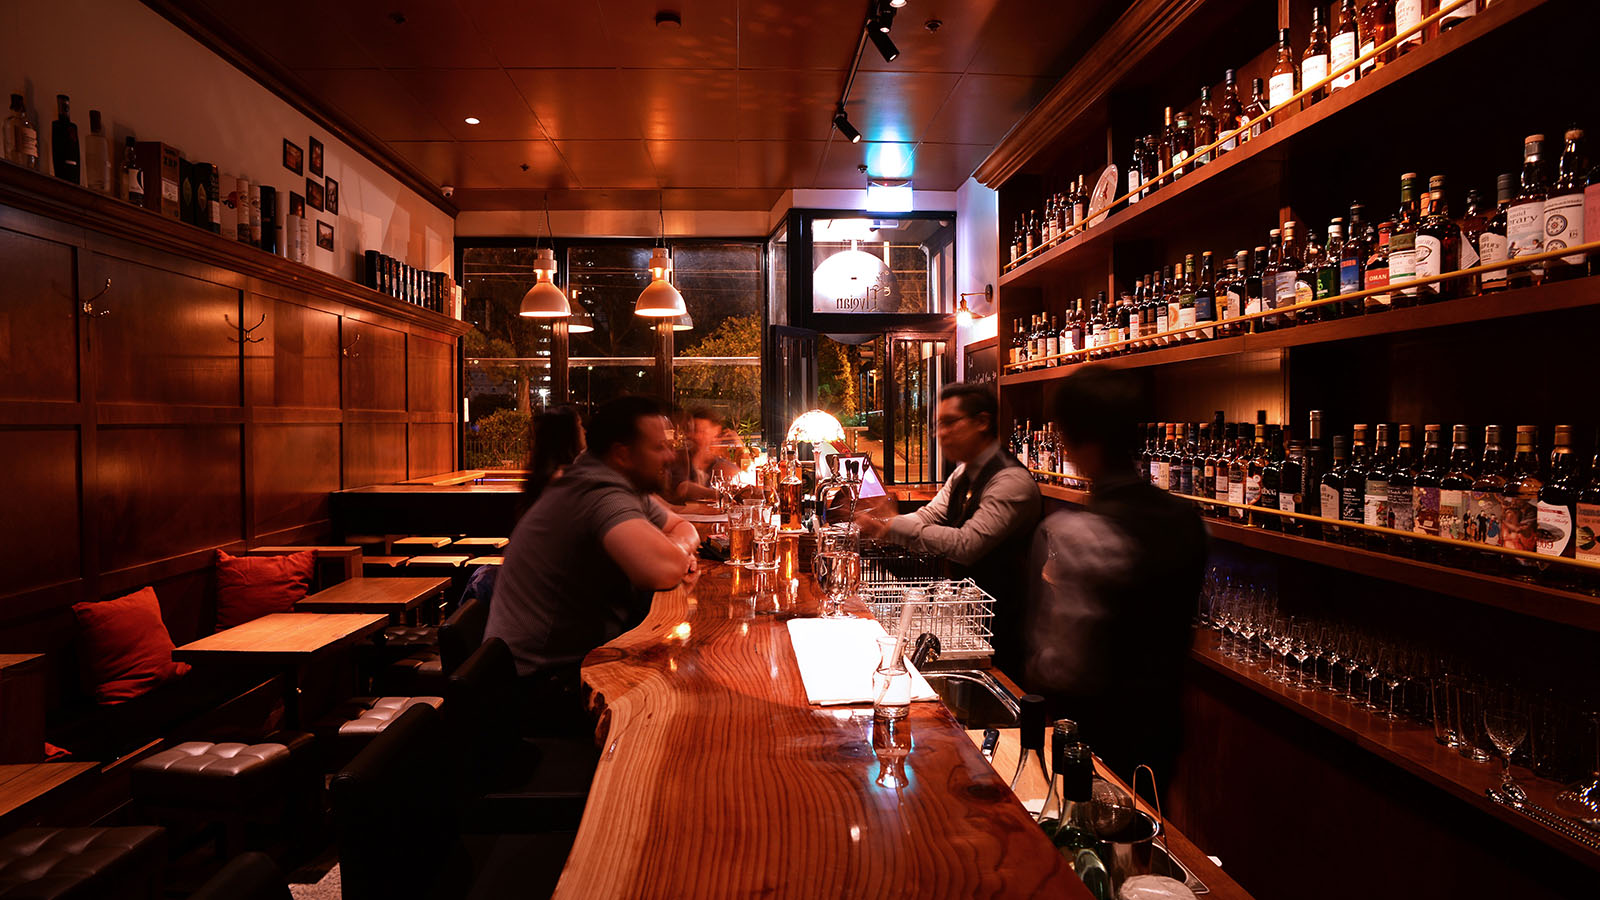 The Elysian Whisky Bar, Melbourne, Victoria, Australia. Credit: James Neilson